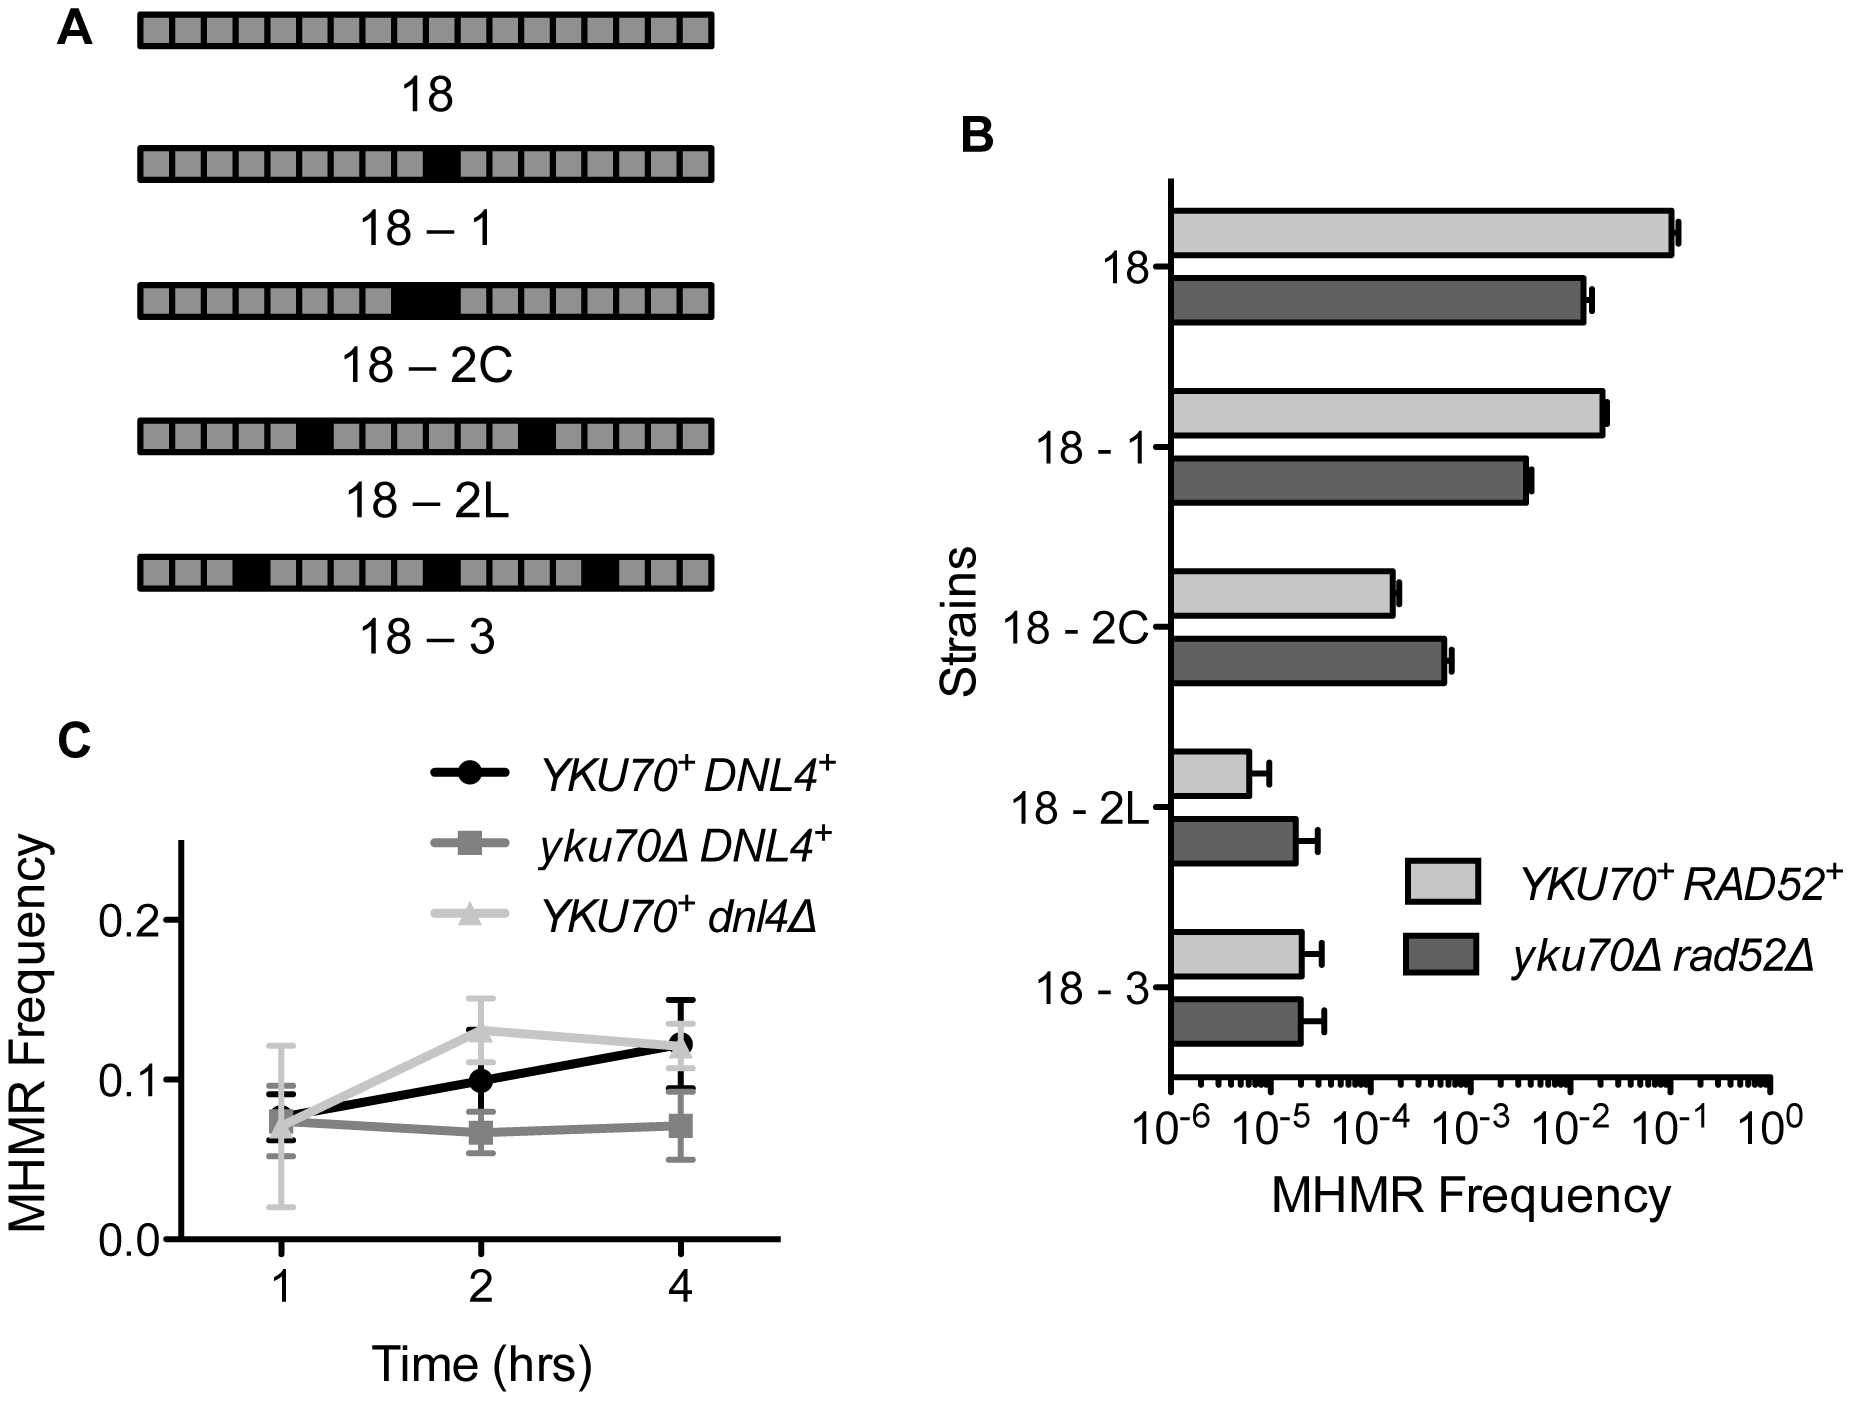 Mismatched microhomology inhibits repair efficiency, but NHEJ does not inhibit MHMR.